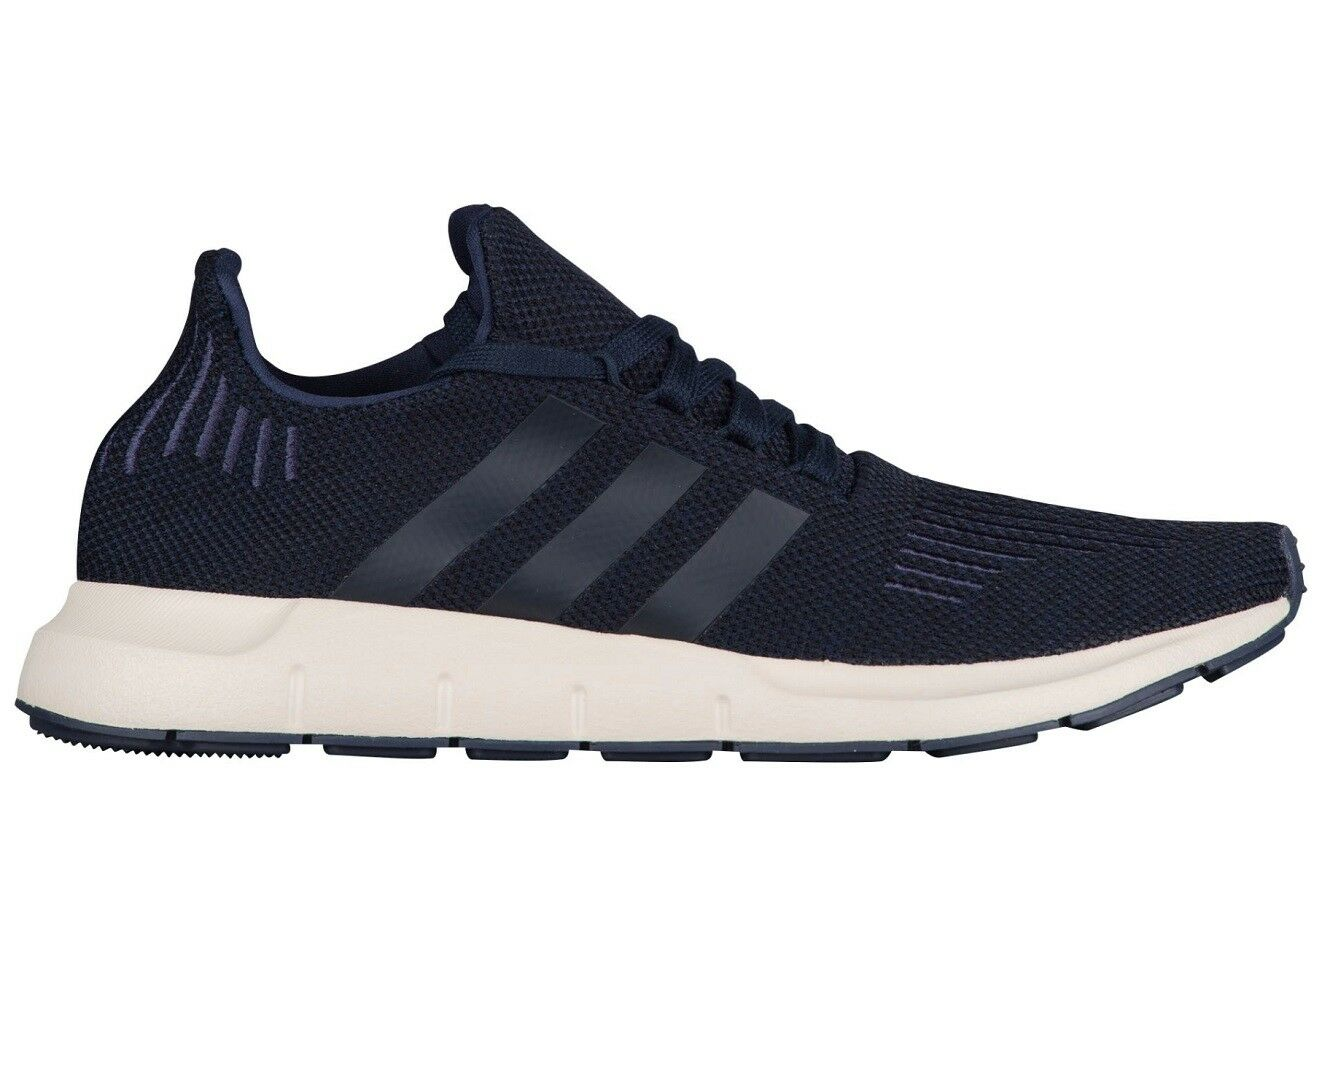 Adidas Swift Run Mens AC7165 Navy Trace Blue Knit Running Shoes Size 13